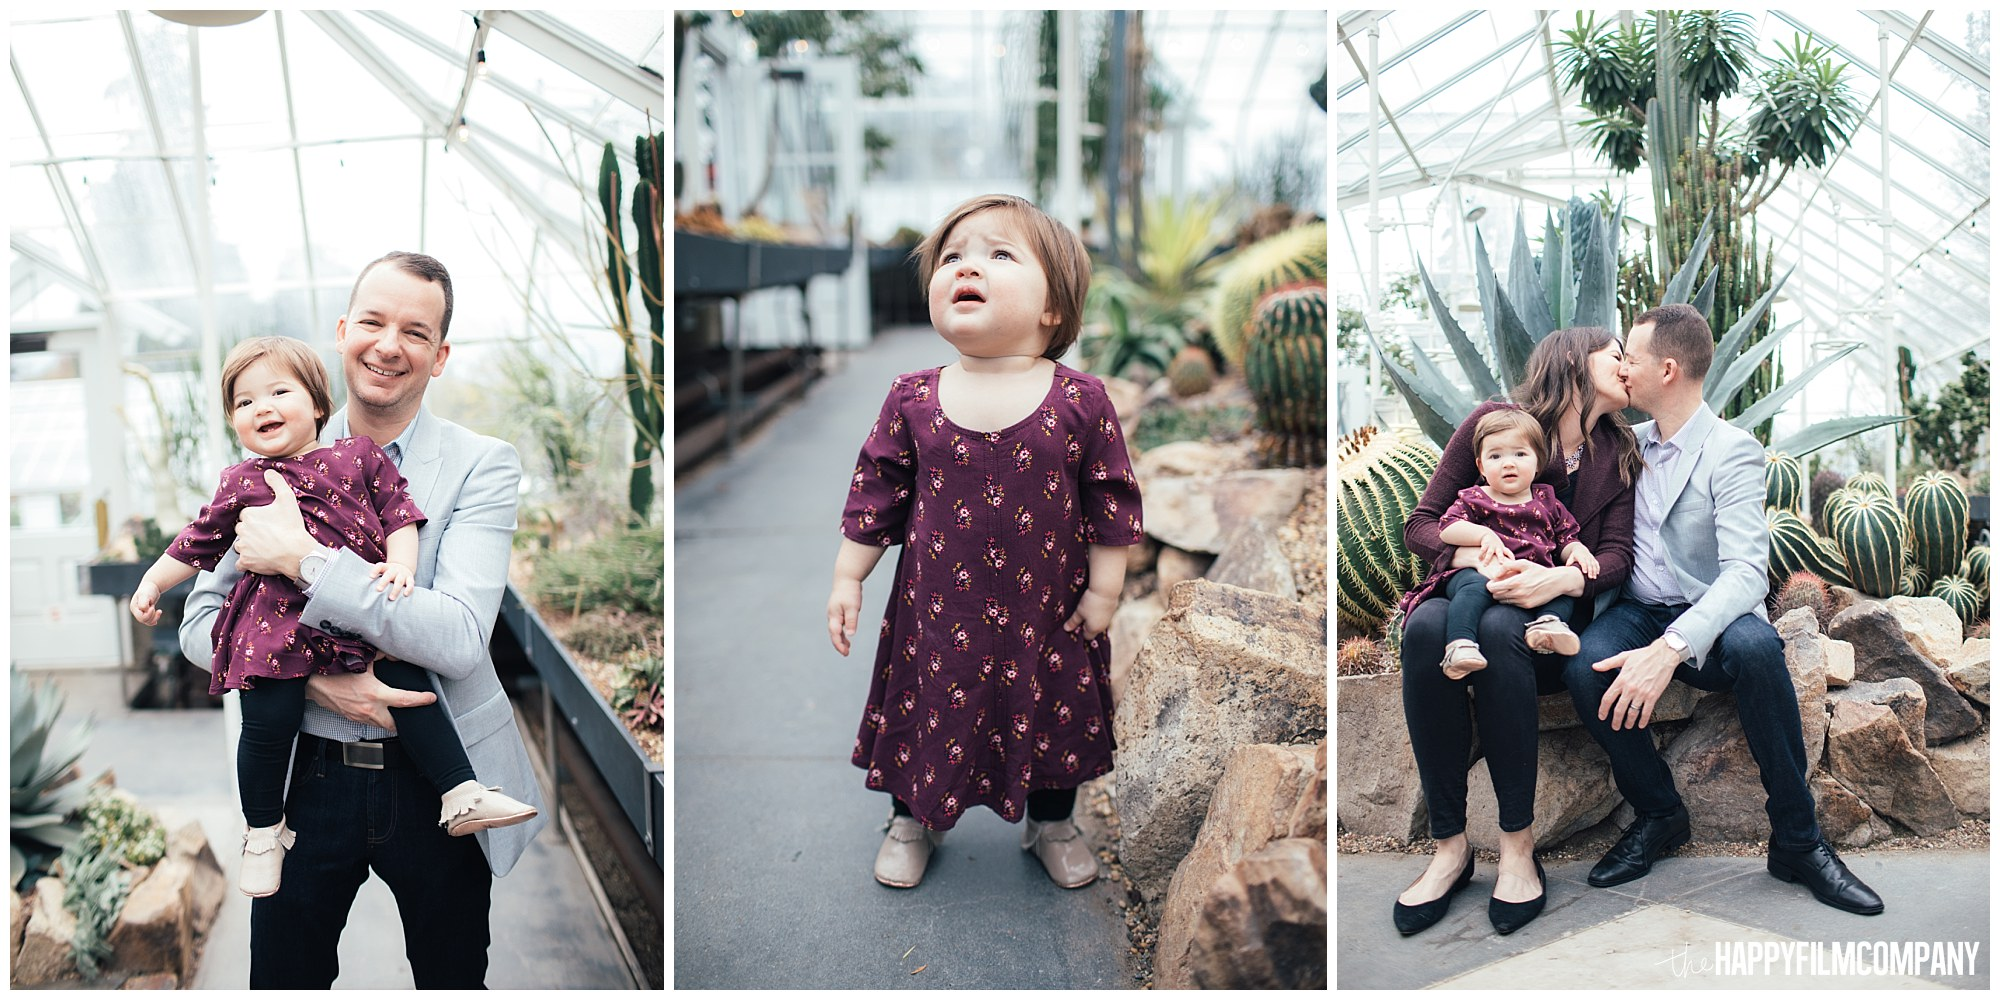 the Happy Film Company - Seattle Family Photos - Volunteer Park Conservatory - baby in greenhouse succulents and cacti